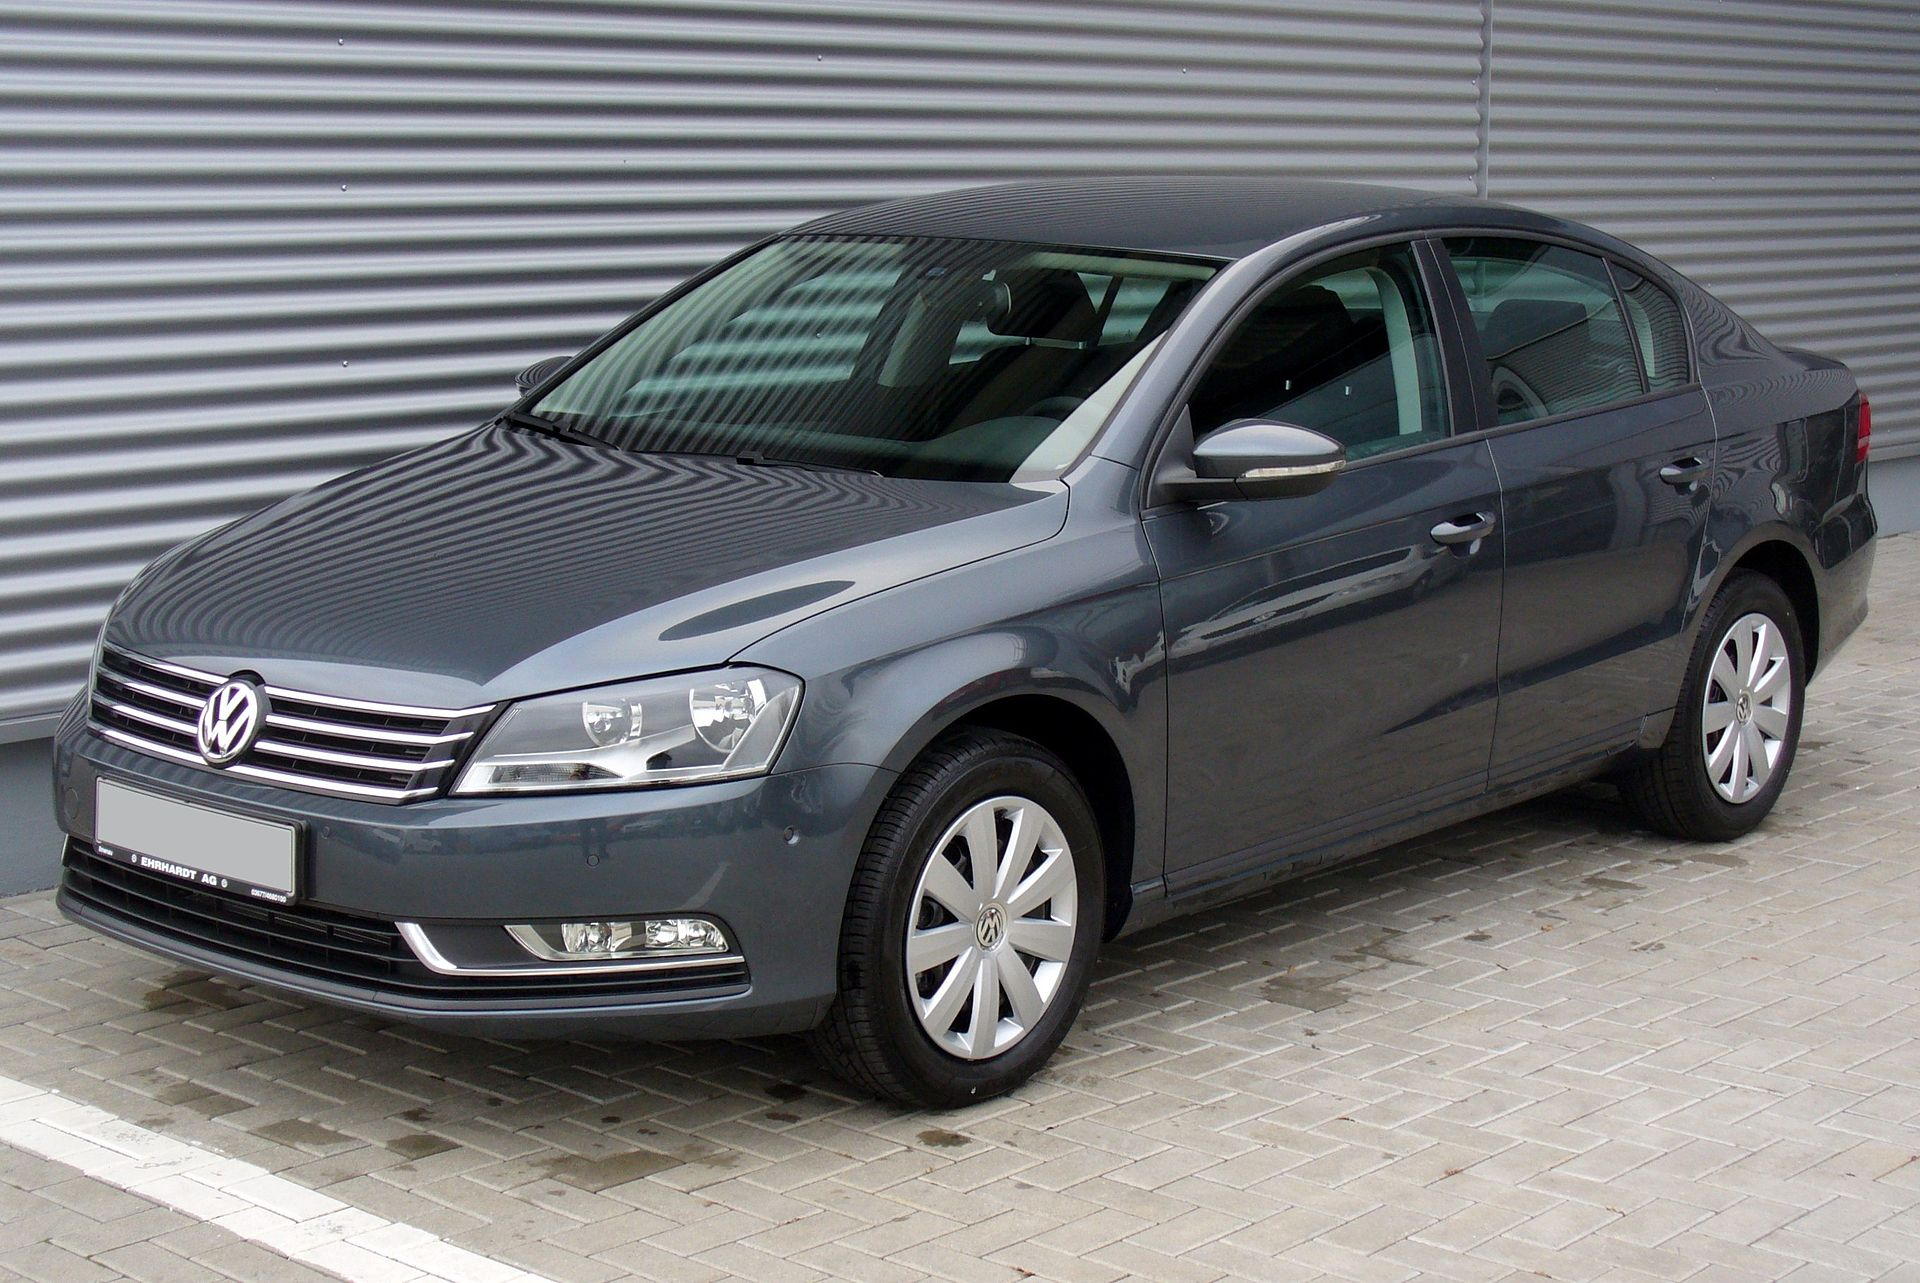 VW Passat B7 – Wikipedia